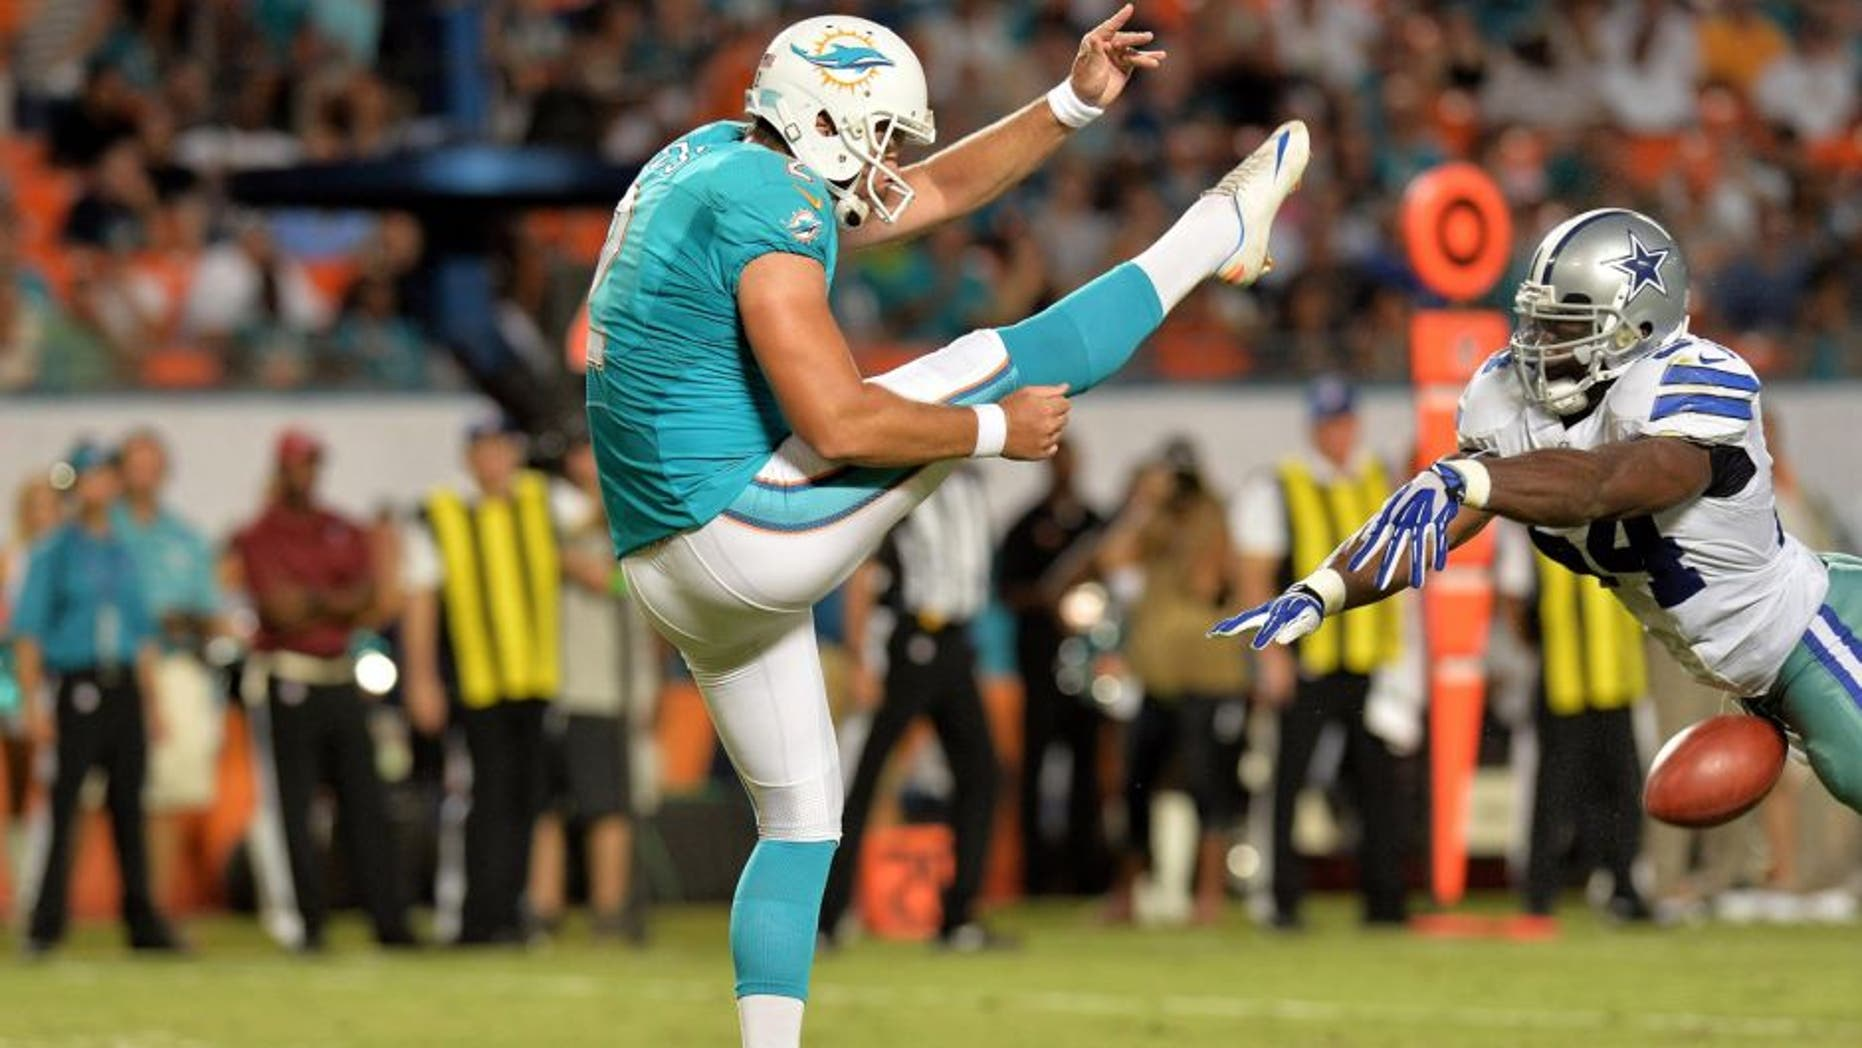 Aug 23, 2014; Miami Gardens, FL, USA; Dallas Cowboys outside linebacker Bruce Carter (54) blocks the punt of Miami Dolphins punter Brandon Fields (2) during the first half at Sun Life Stadium. Mandatory Credit: Steve Mitchell-USA TODAY Sports